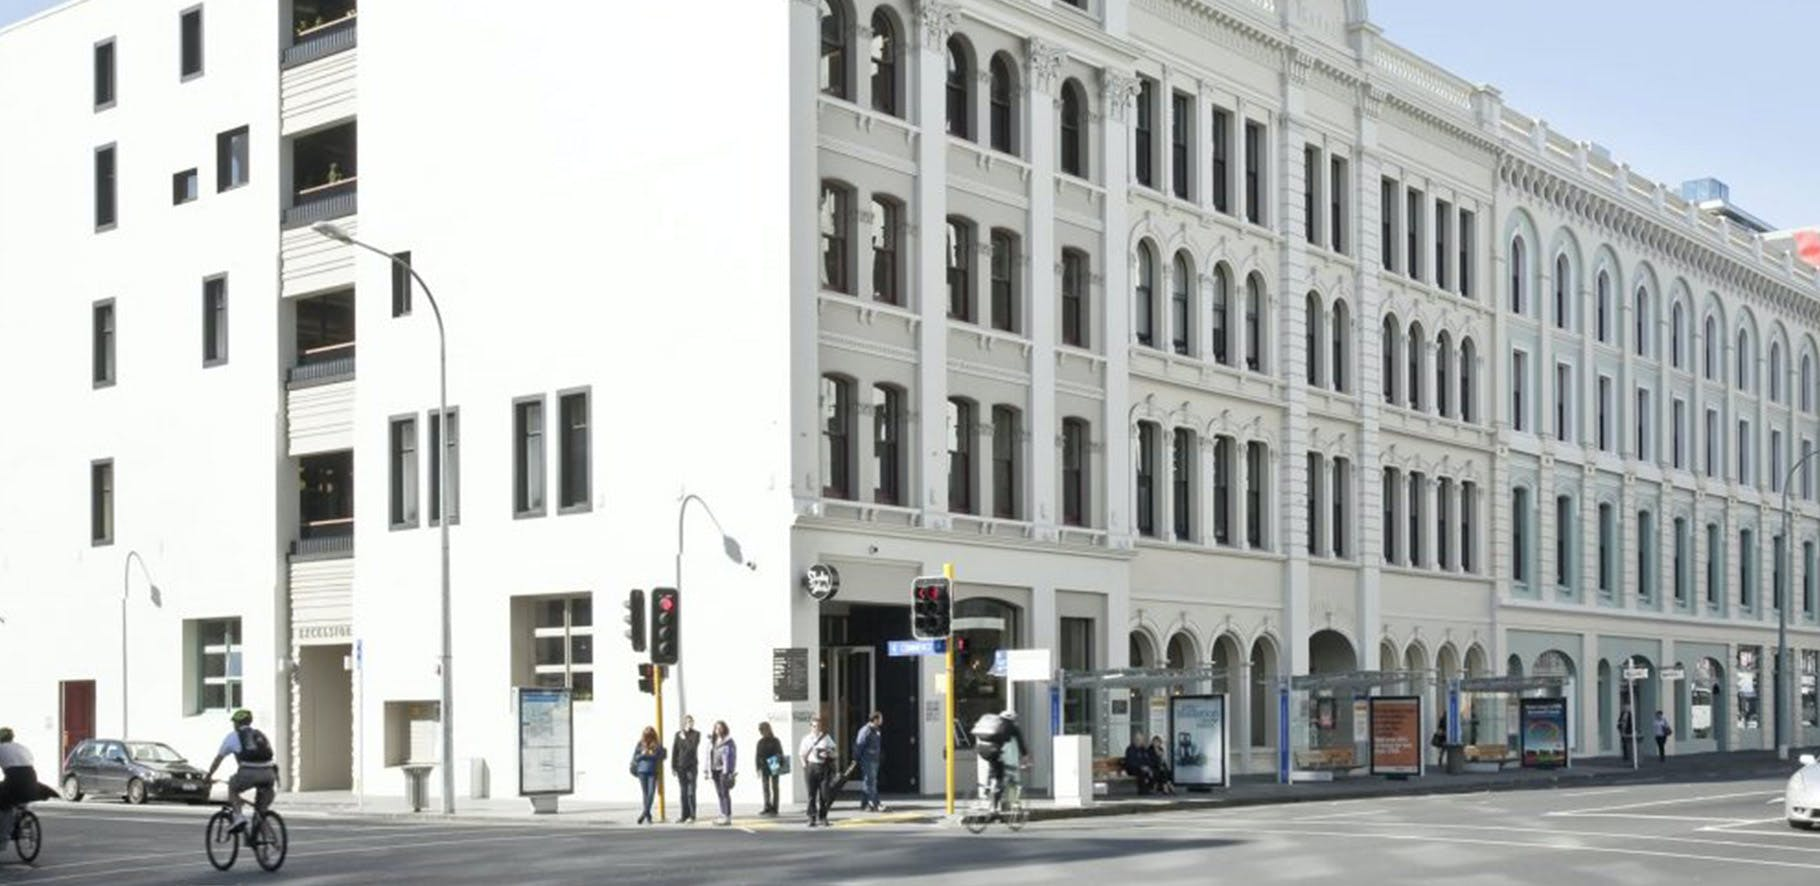 people standing on a street corner waiting for the lights with a big building behind them